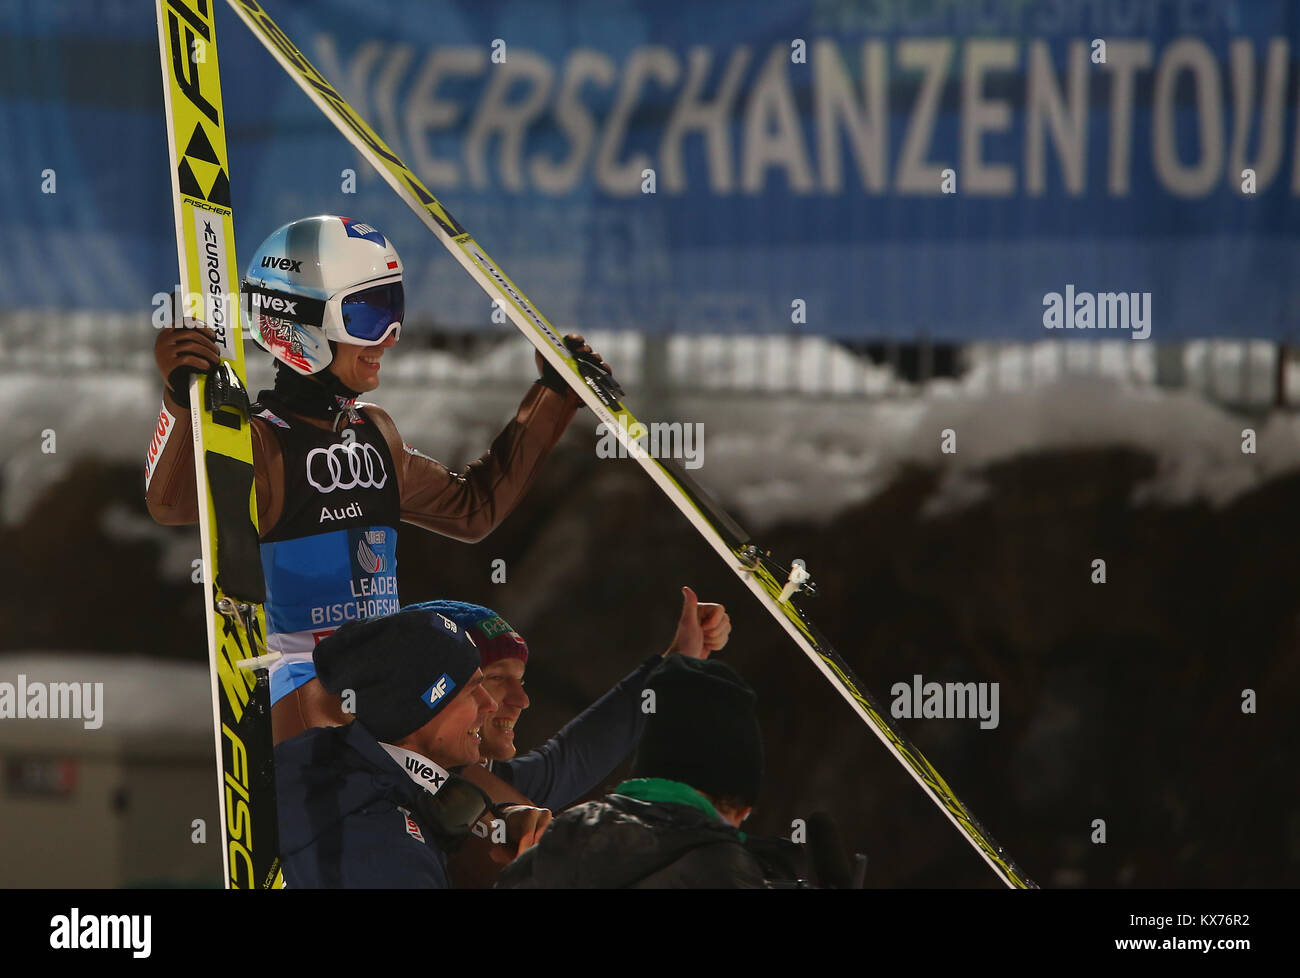 Bischofshofen, Austria. 06th, Jan, 2018. Poland's Kamil Stoch (center) celebrates victory in the FIS Nordic - Stock Image